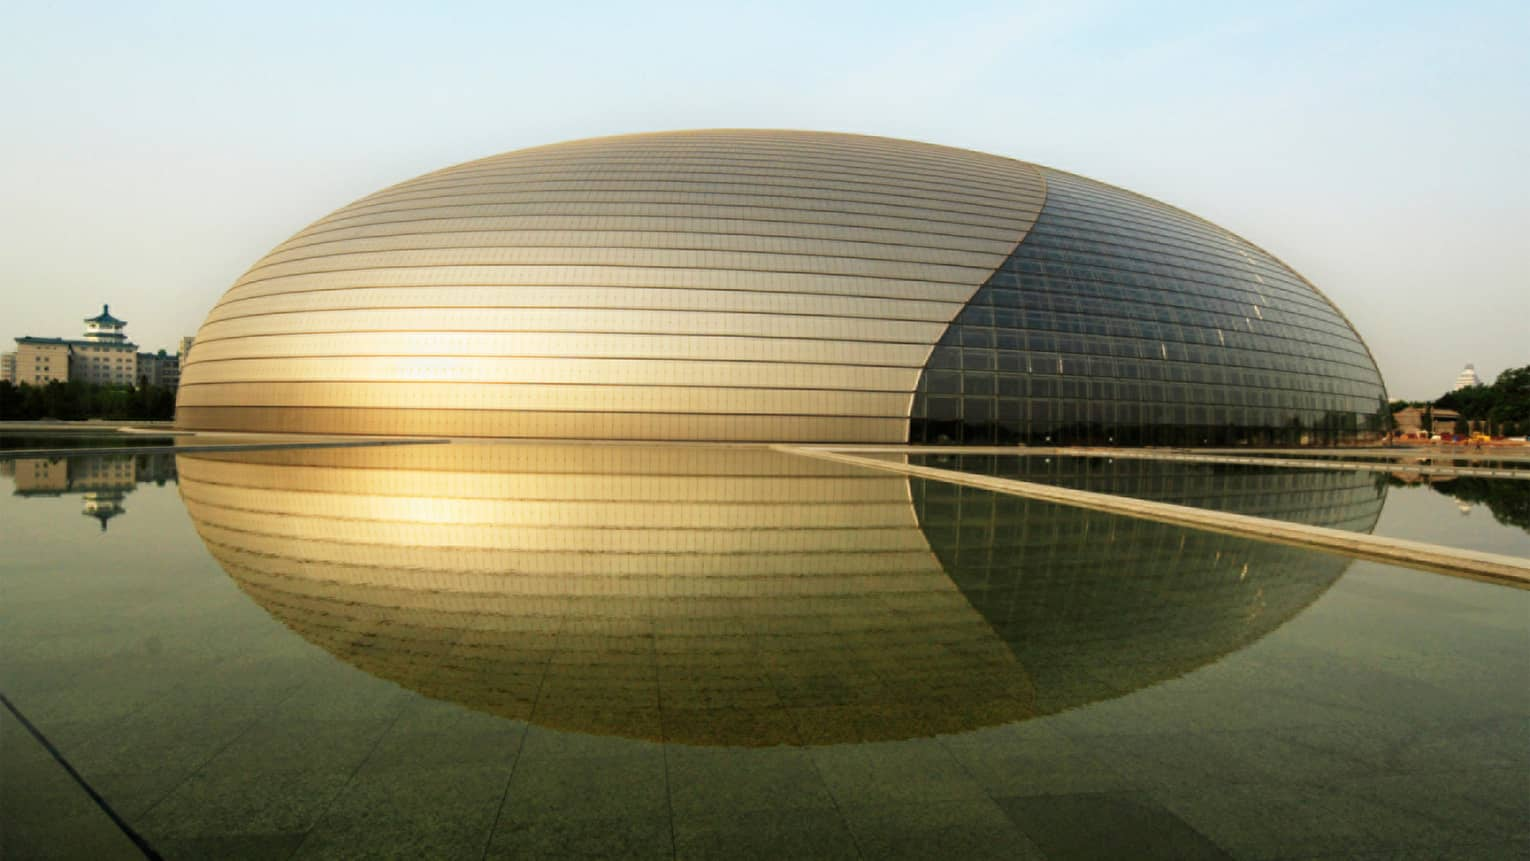 Exterior of Beijing National Centre for the Performing arts gold egg-shaped building